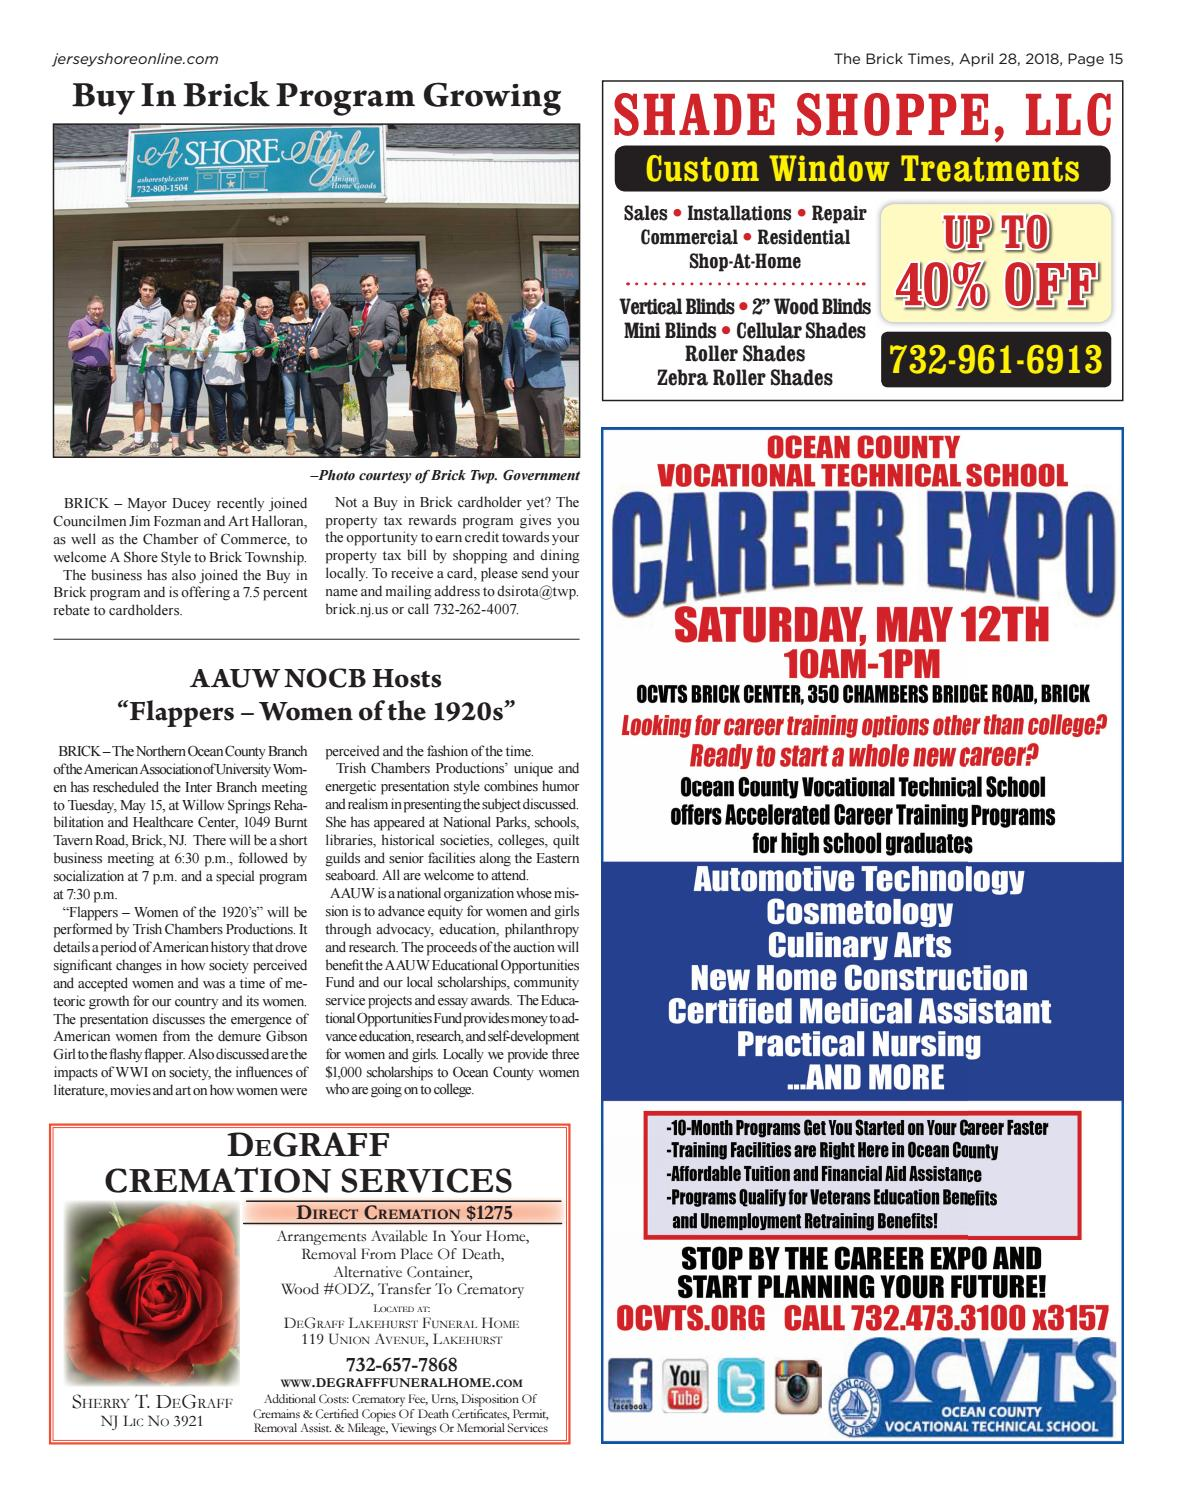 2018-04-28 - The Brick Times by Micromedia Publications